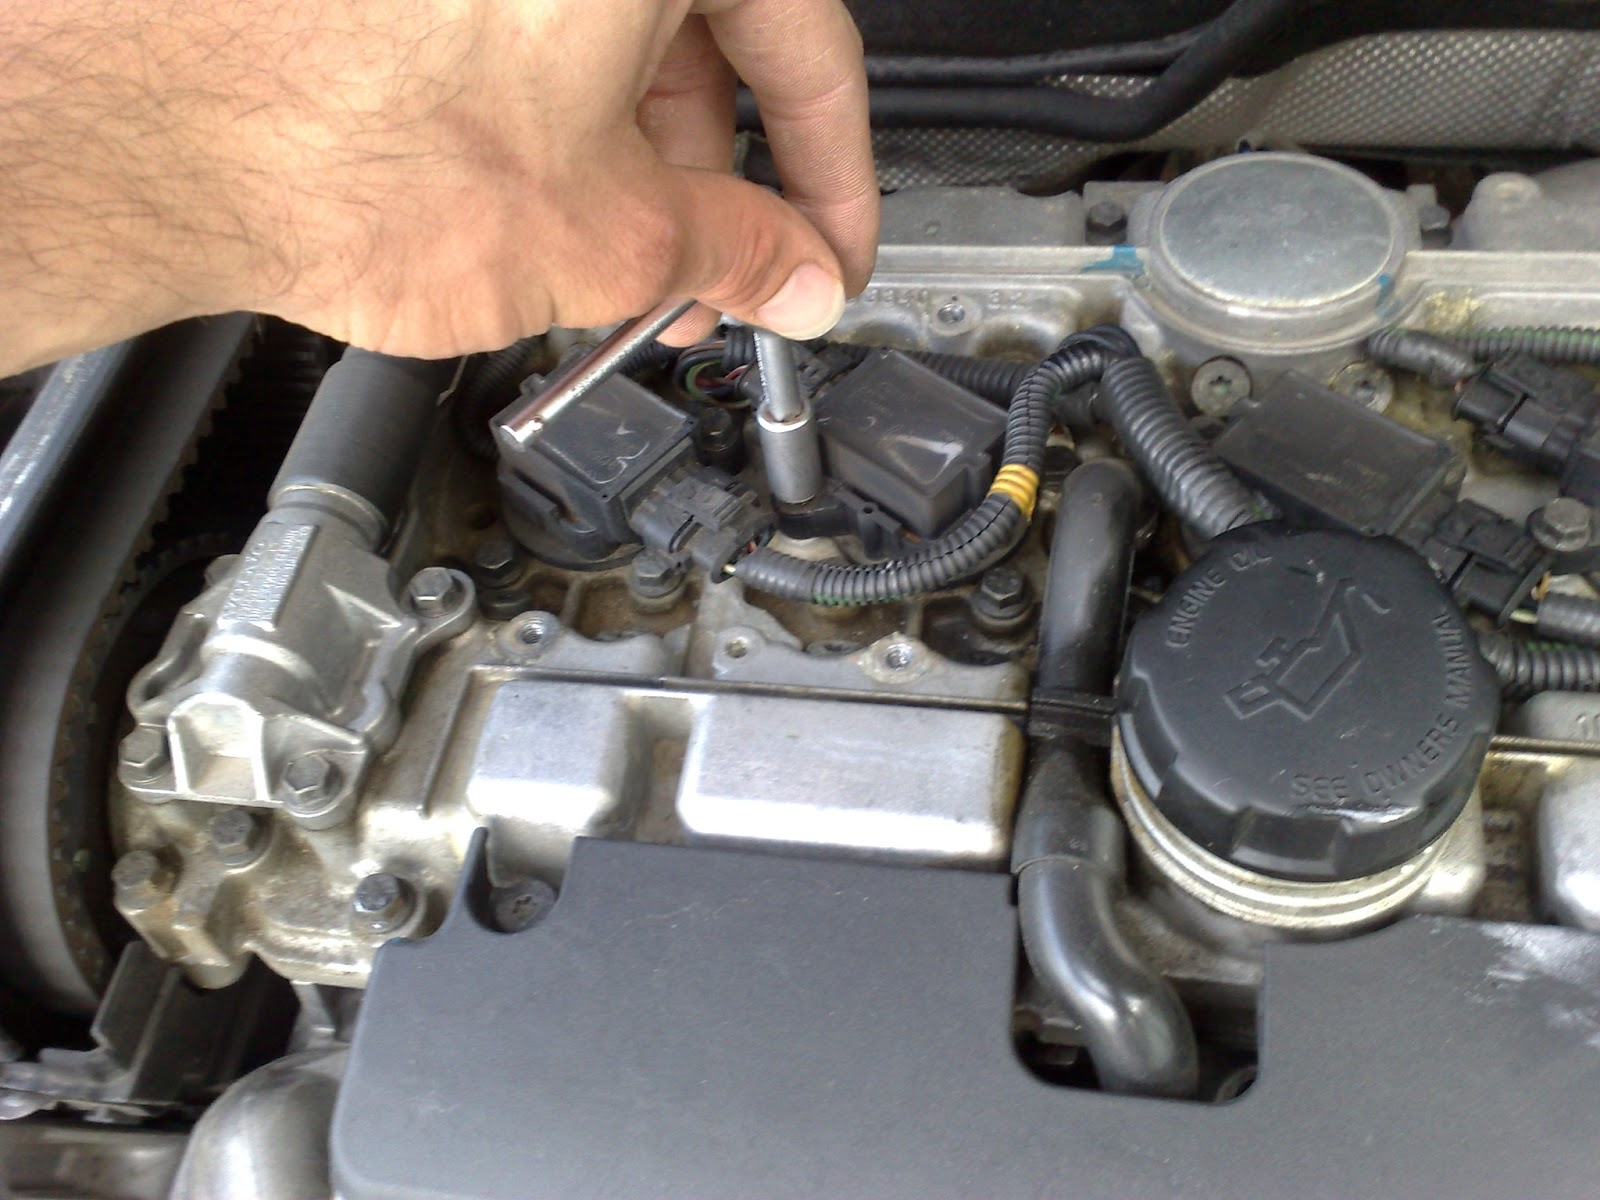 97 altima mod with Fallo De Bobina P0350p0351p0352p0353 Y P0354 on Aceite Transmision further Resp08 as well Fallo De Bobina P0350p0351p0352p0353 Y P0354 additionally 2004 Dodge Stratus 2 4 Engine Diagram in addition Nissan Pulsar 2 0 1999 Specs And Images.